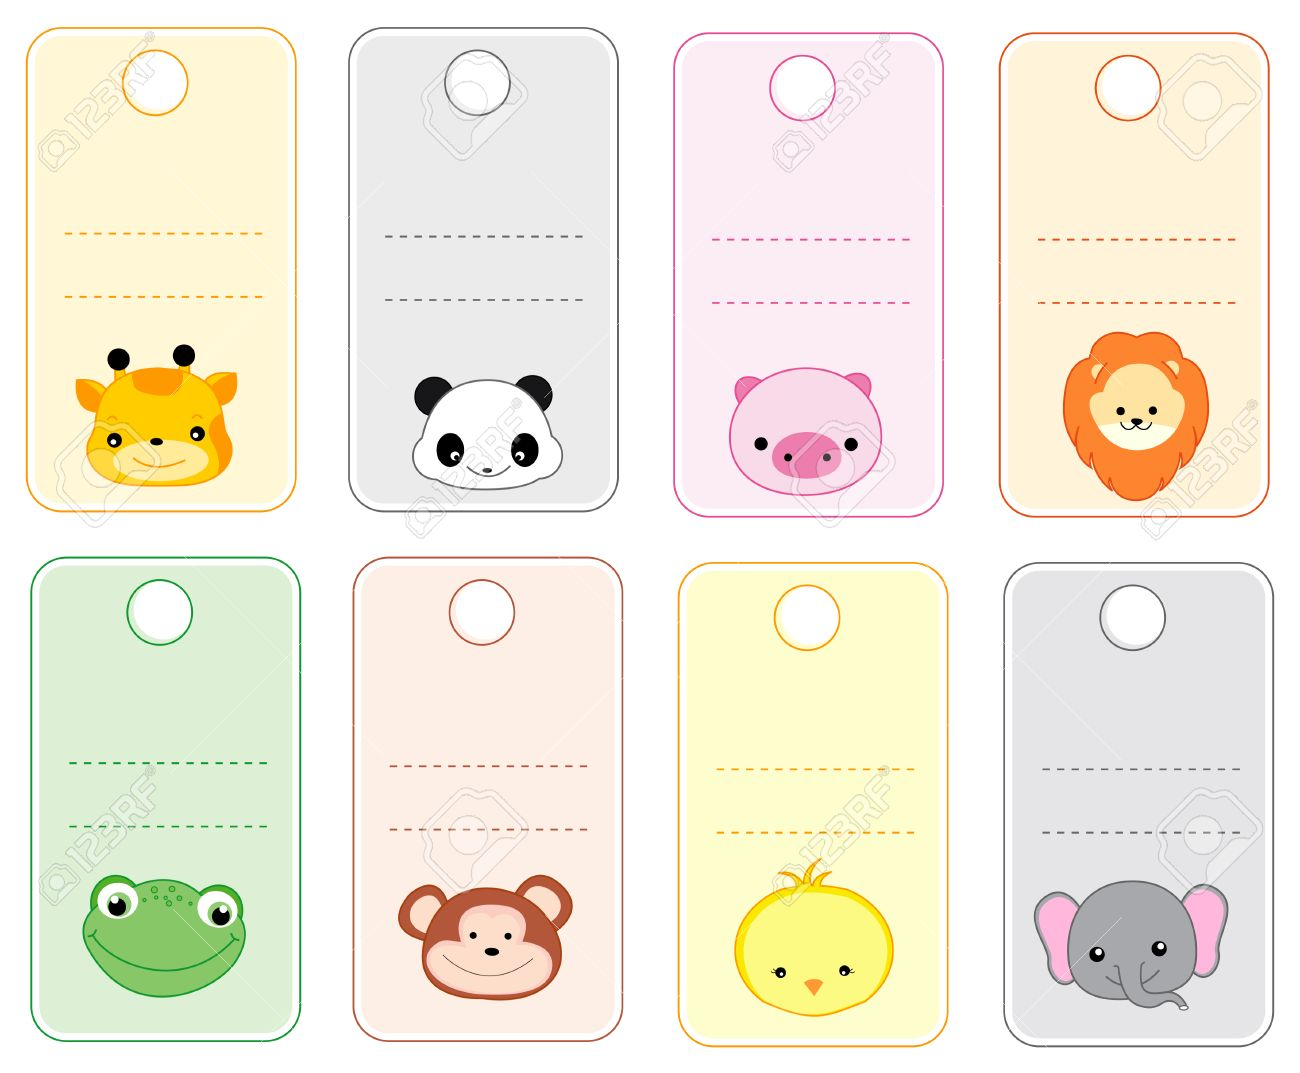 image relating to Cute Gift Tags Printable known as Vibrant printable present tags / reputation tags with adorable animal faces..